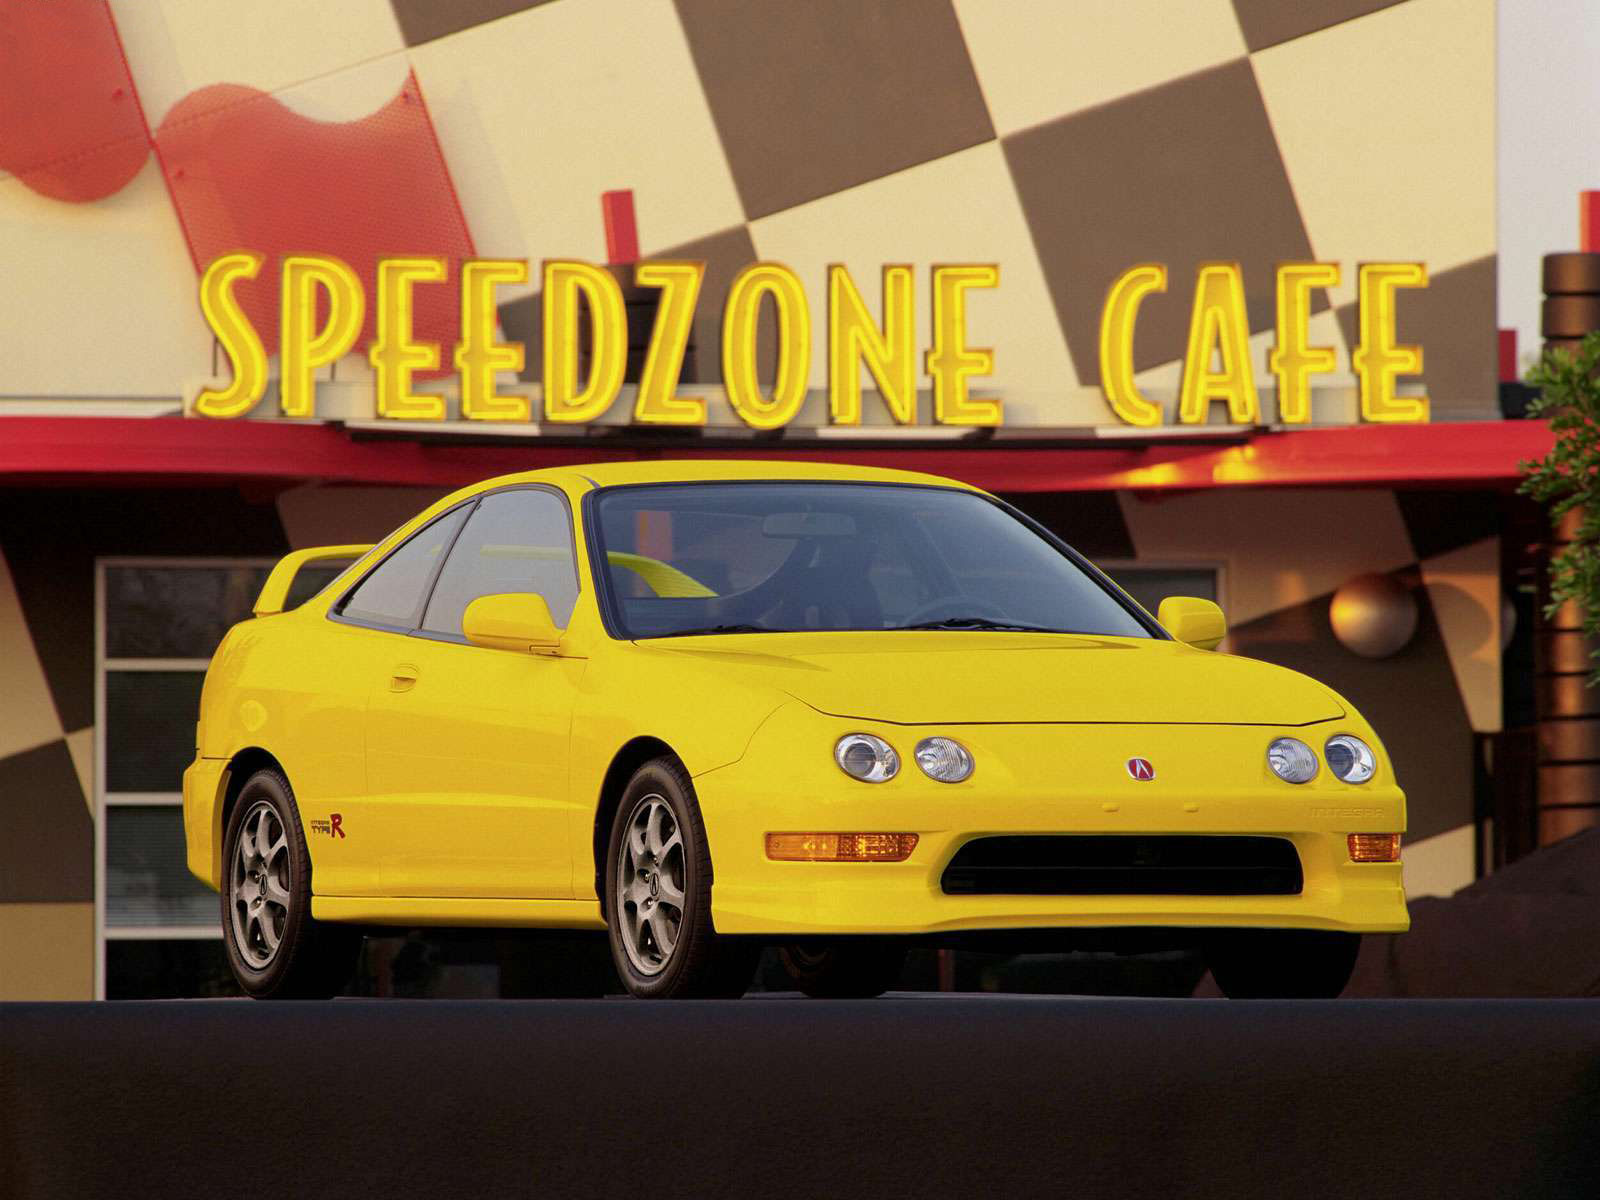 http://1.bp.blogspot.com/-8p7EP8cj6Dk/Th-Ahz4FAxI/AAAAAAAAAME/QeHn_0tpzMU/s1600/Acura-Integra_japanese-car-wallpapers_2001-2.jpg